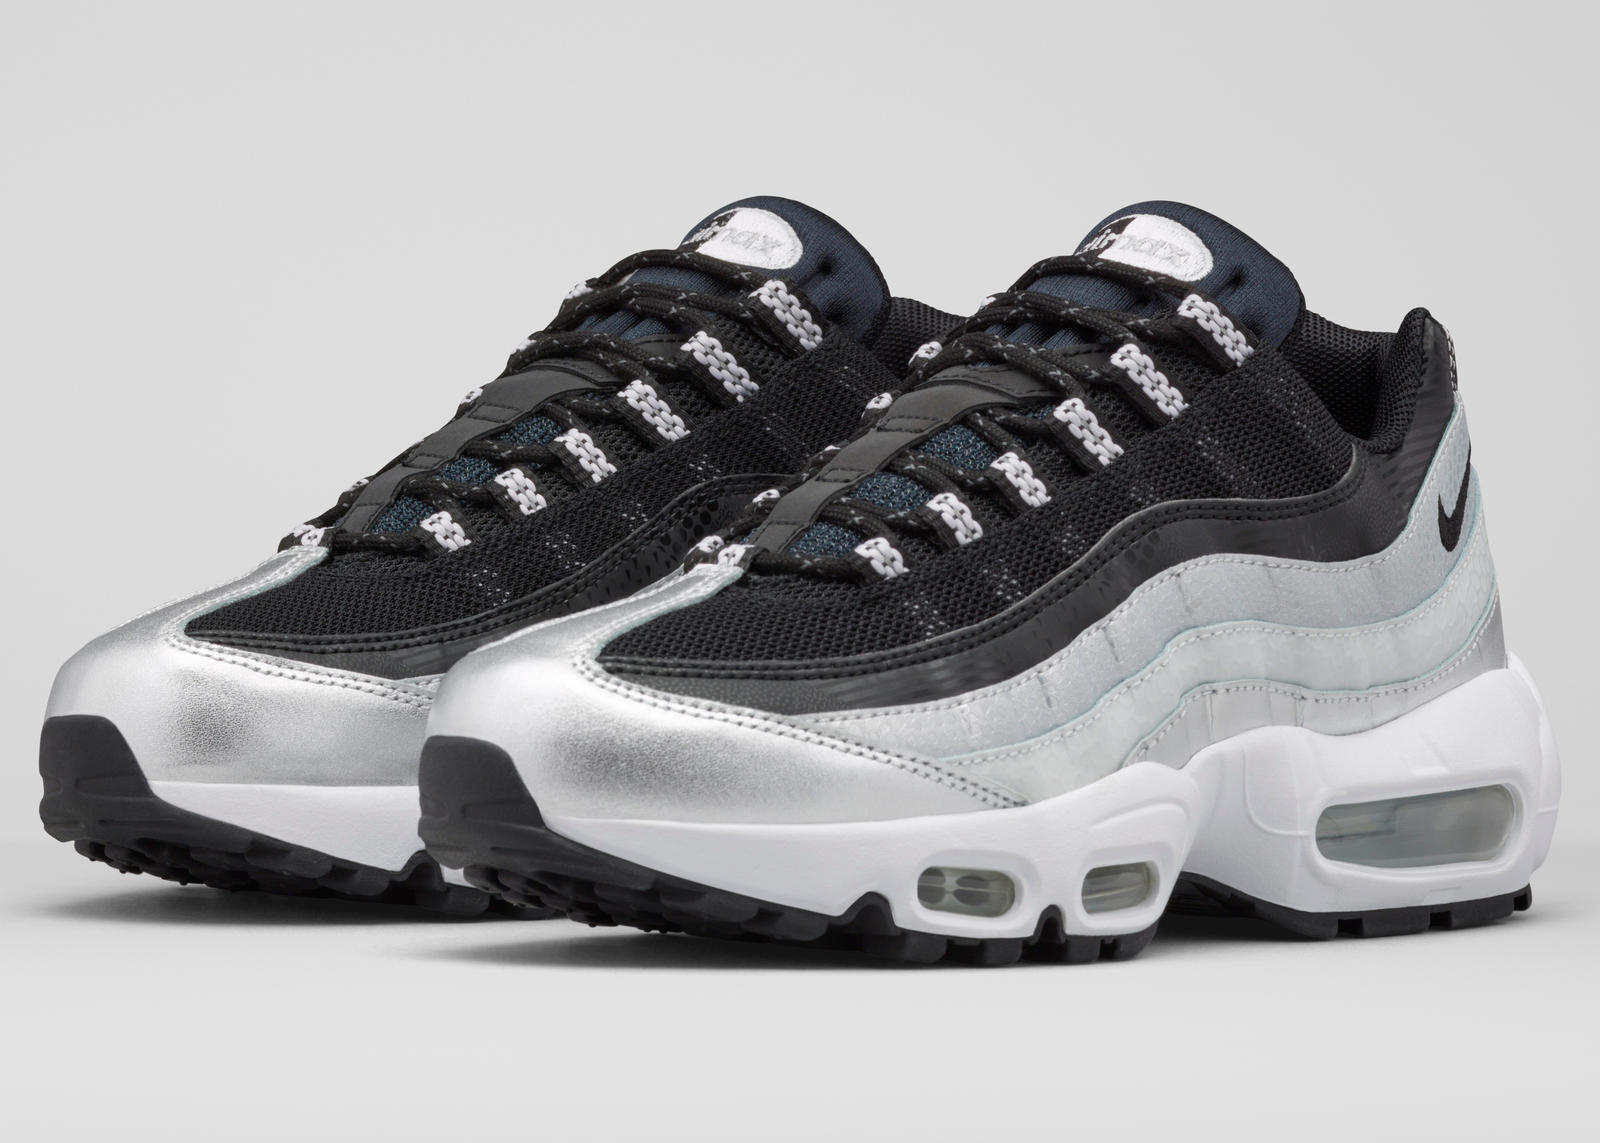 fd40bf4da23 Already Platinum  The Air Max 95 s 20th Anniversary Style - Nike News